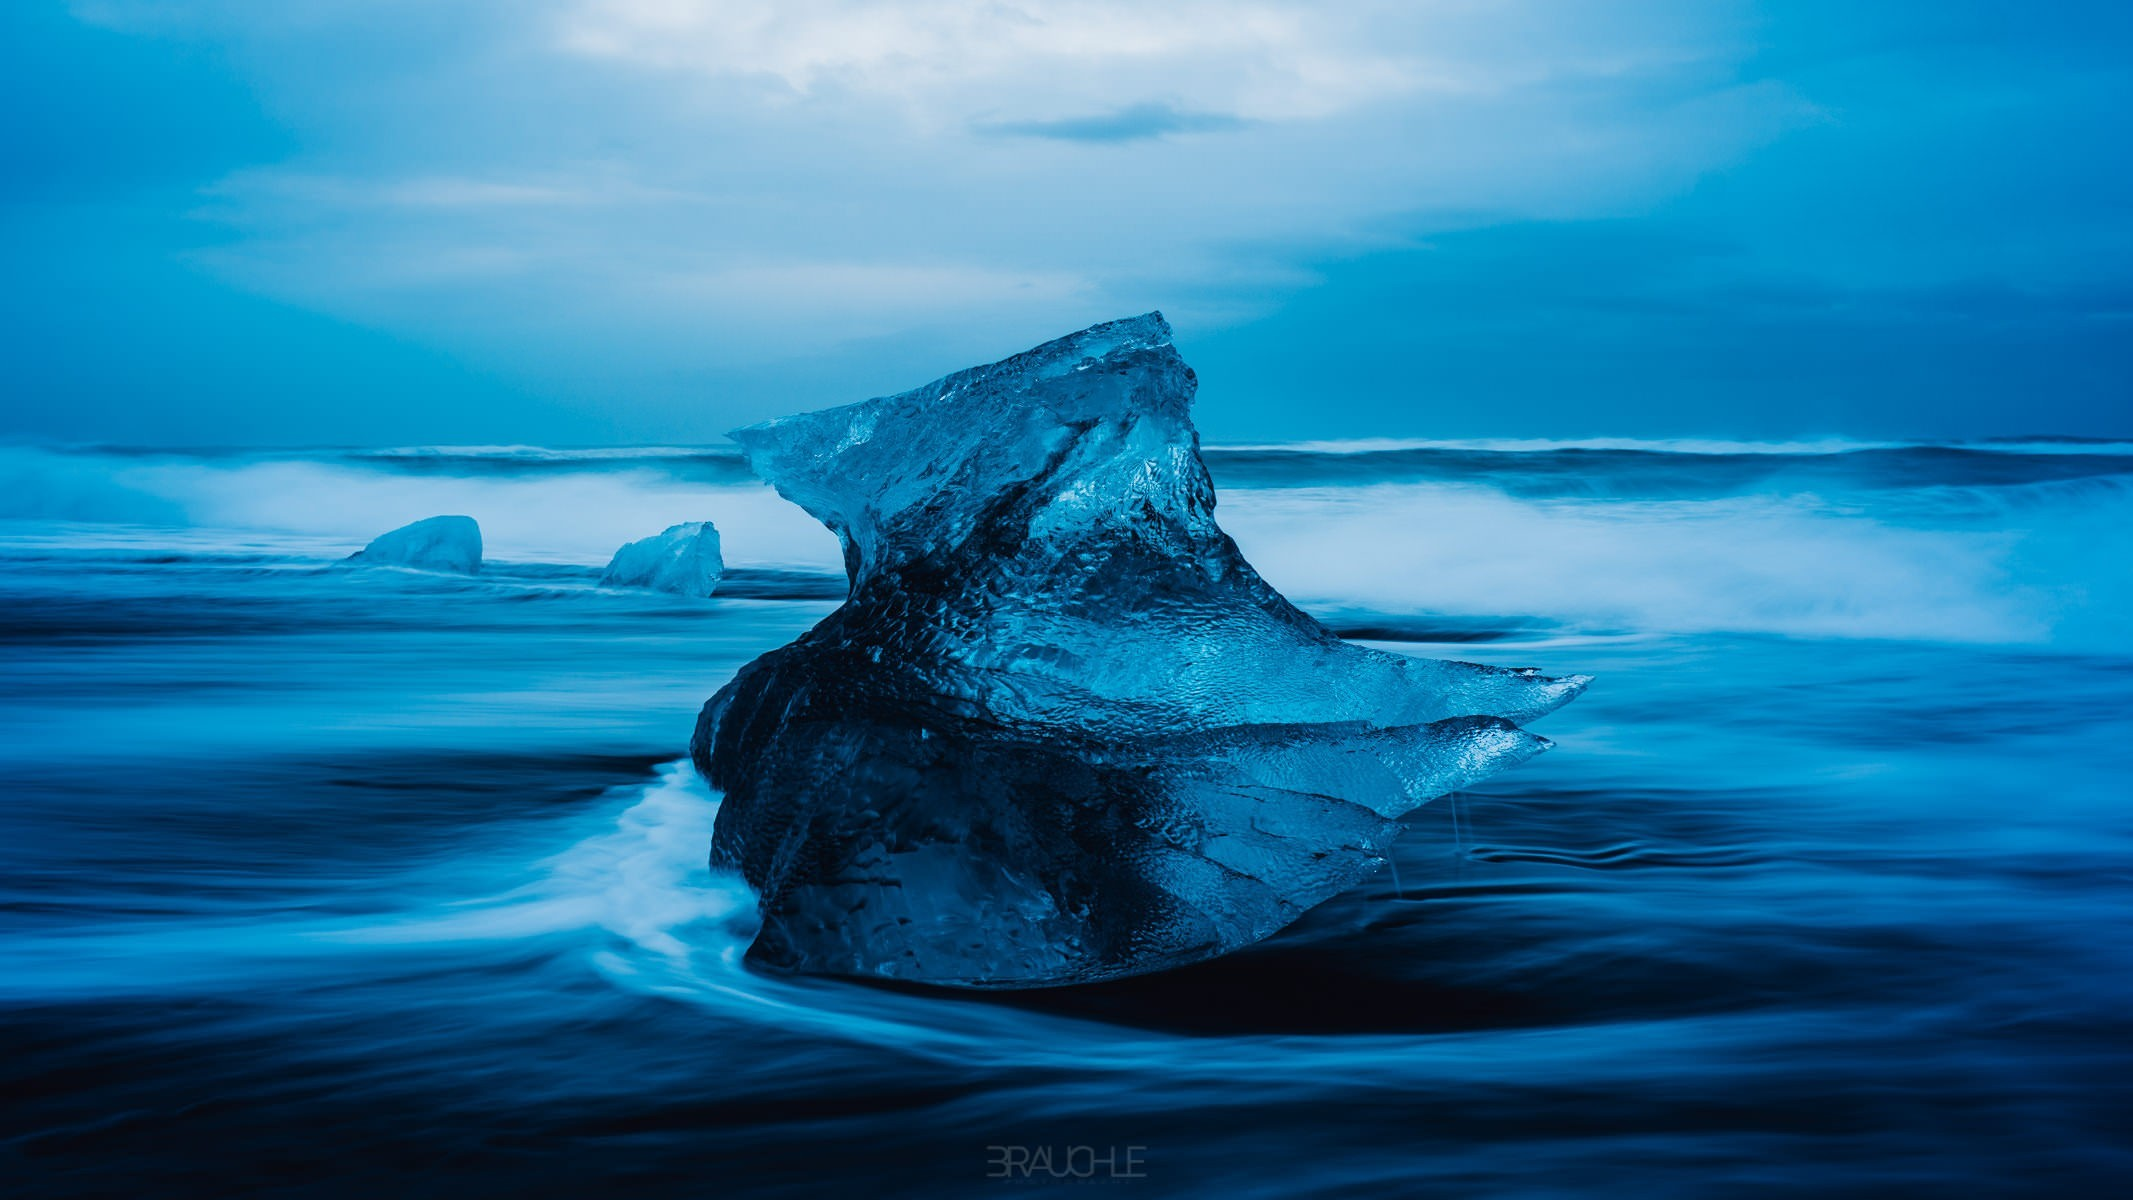 iceland-joekurlarlon-black-beach-ice-blocks-4